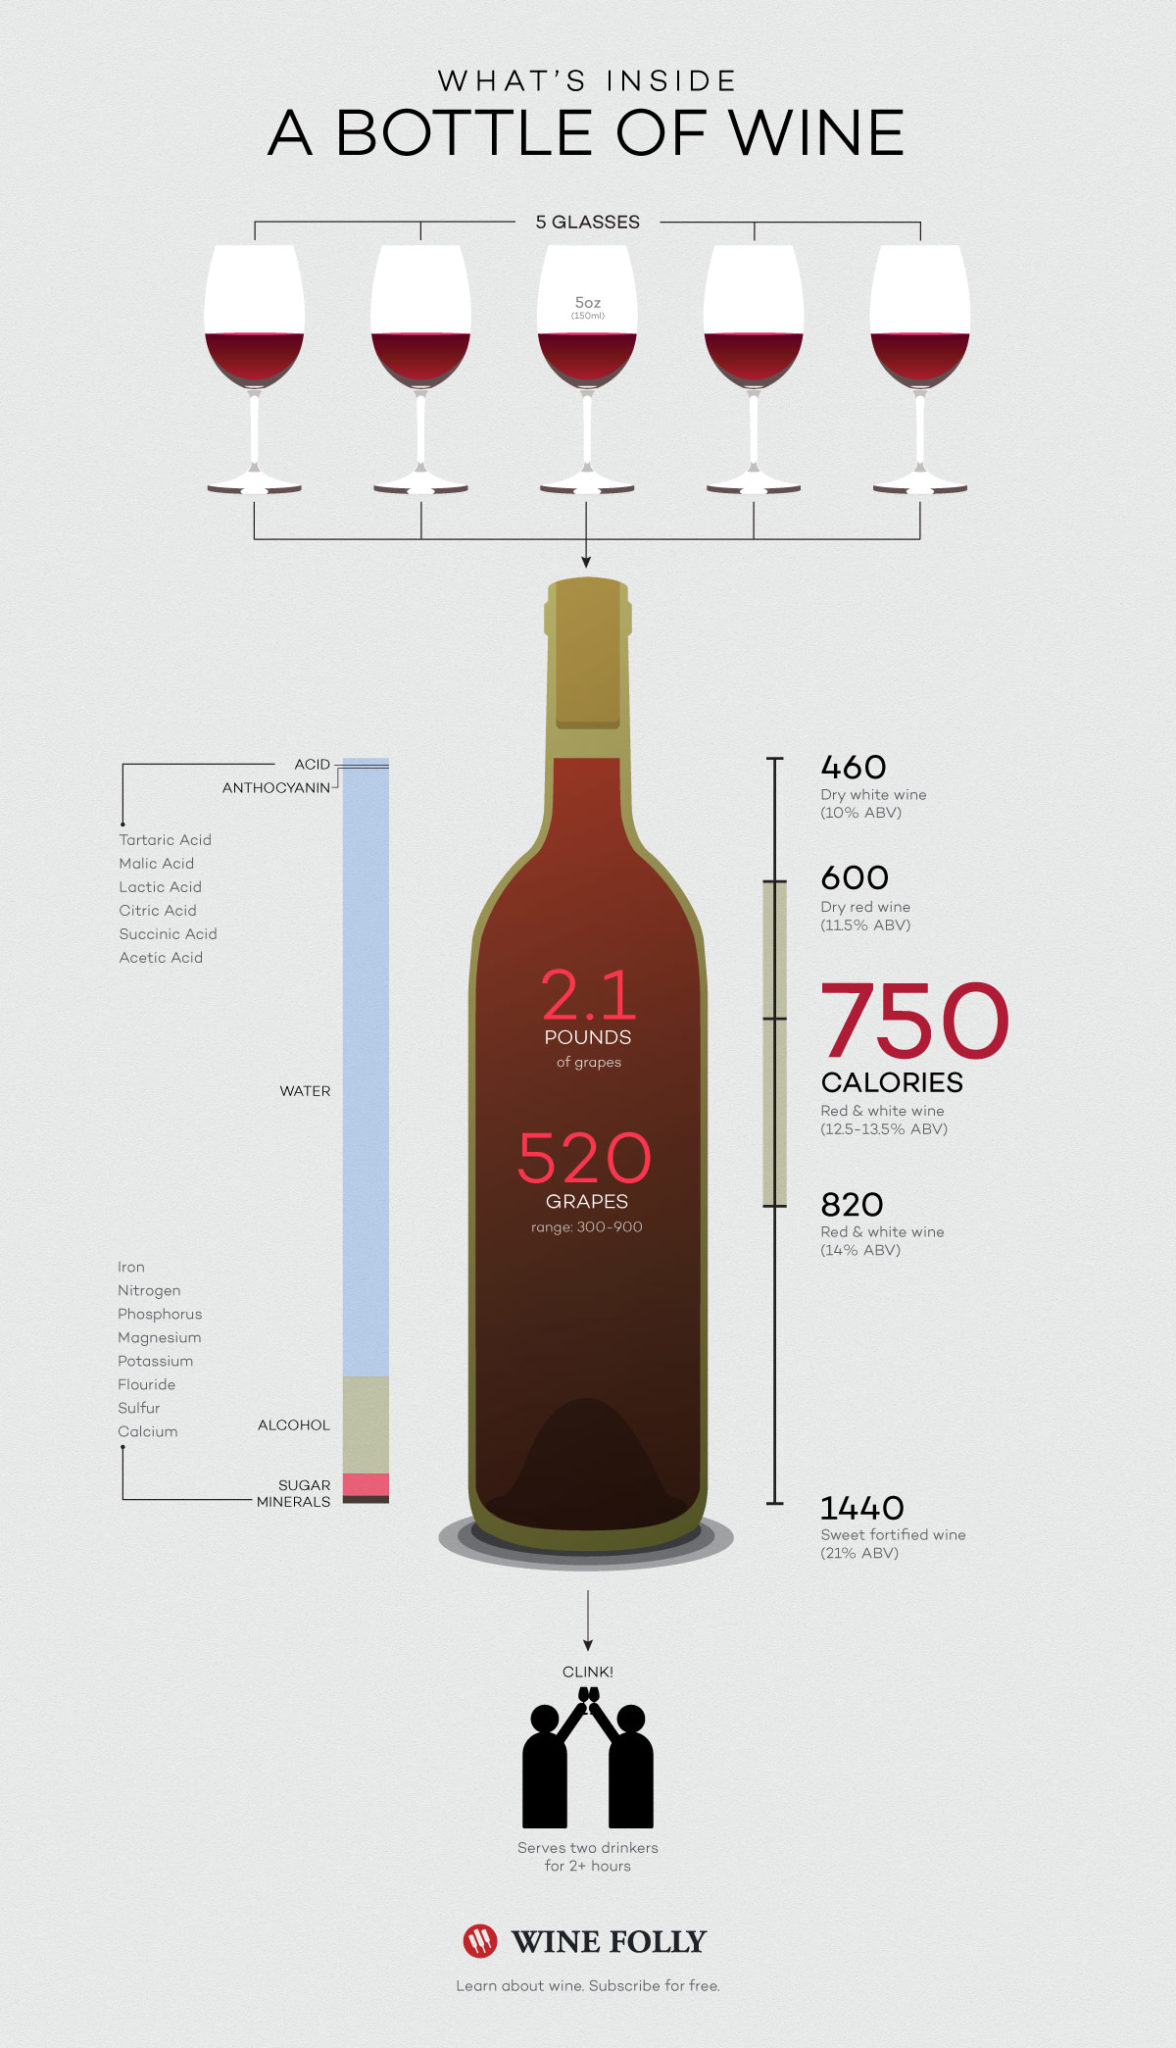 whats in a bottle of wine